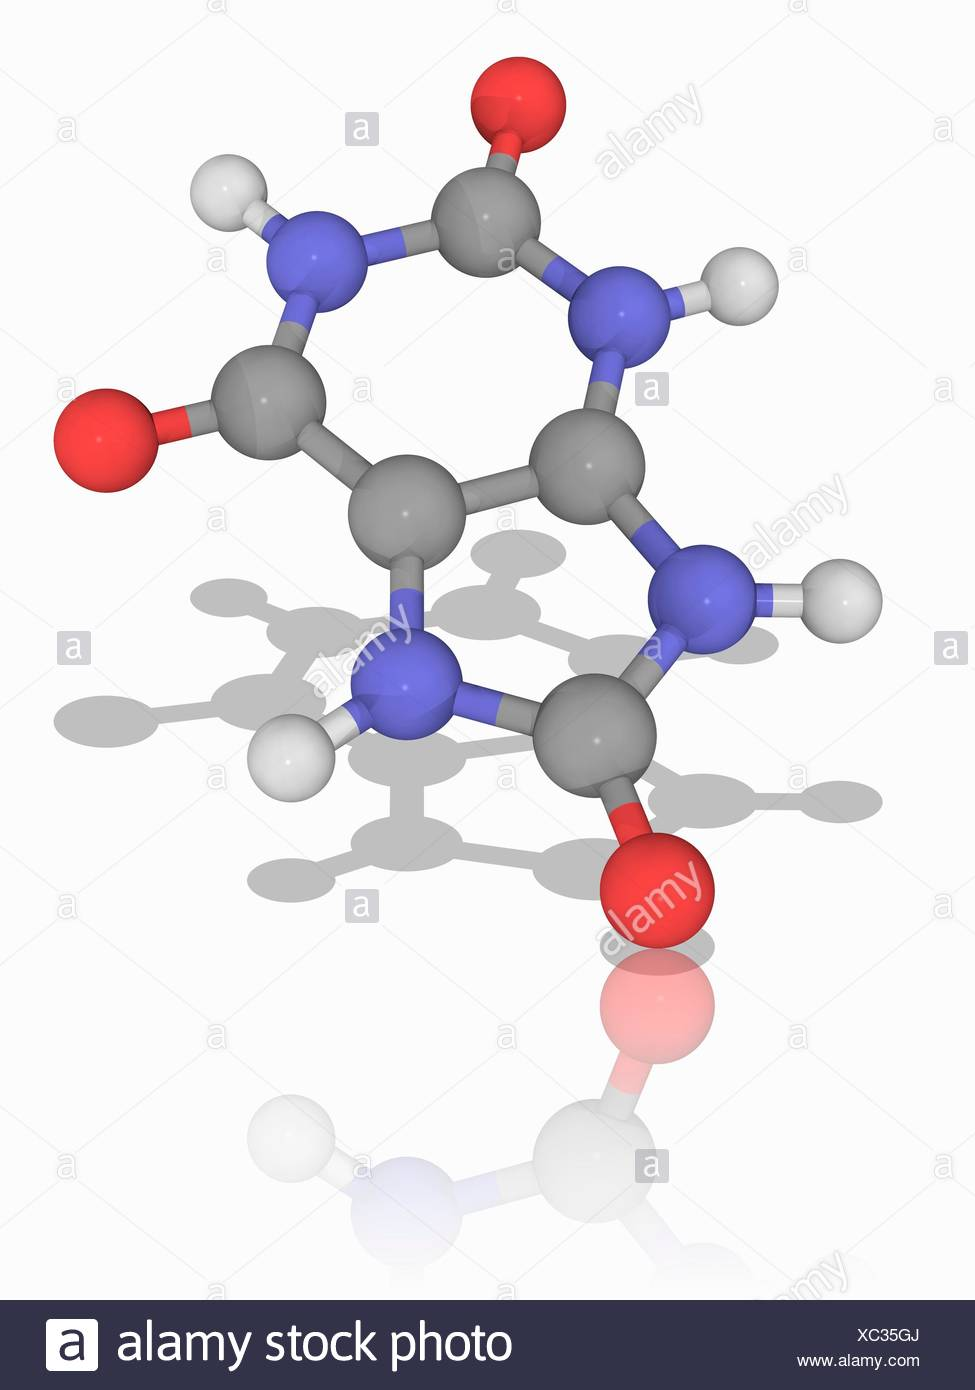 Uric acid. Molecular model of the organic compound urea (C5.H4.N4.O3), created when the body breaks down purine nucleotides. Atoms are represented as spheres and are colour-coded: carbon (grey), hydrogen (white), nitrogen (blue) and oxygen (red). Illustration. - Stock Image